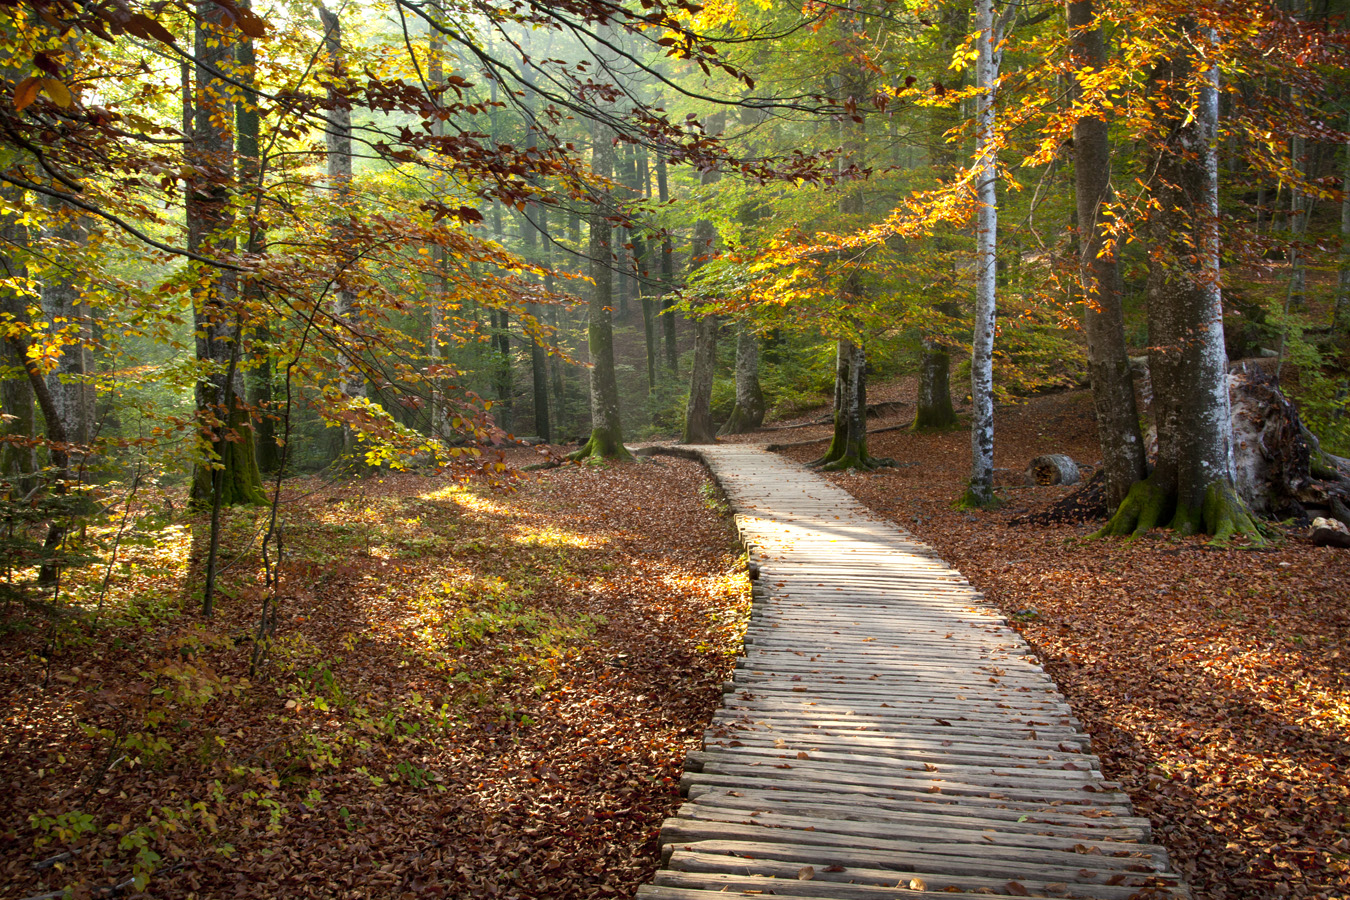 Autumn Pathway, Plitvice